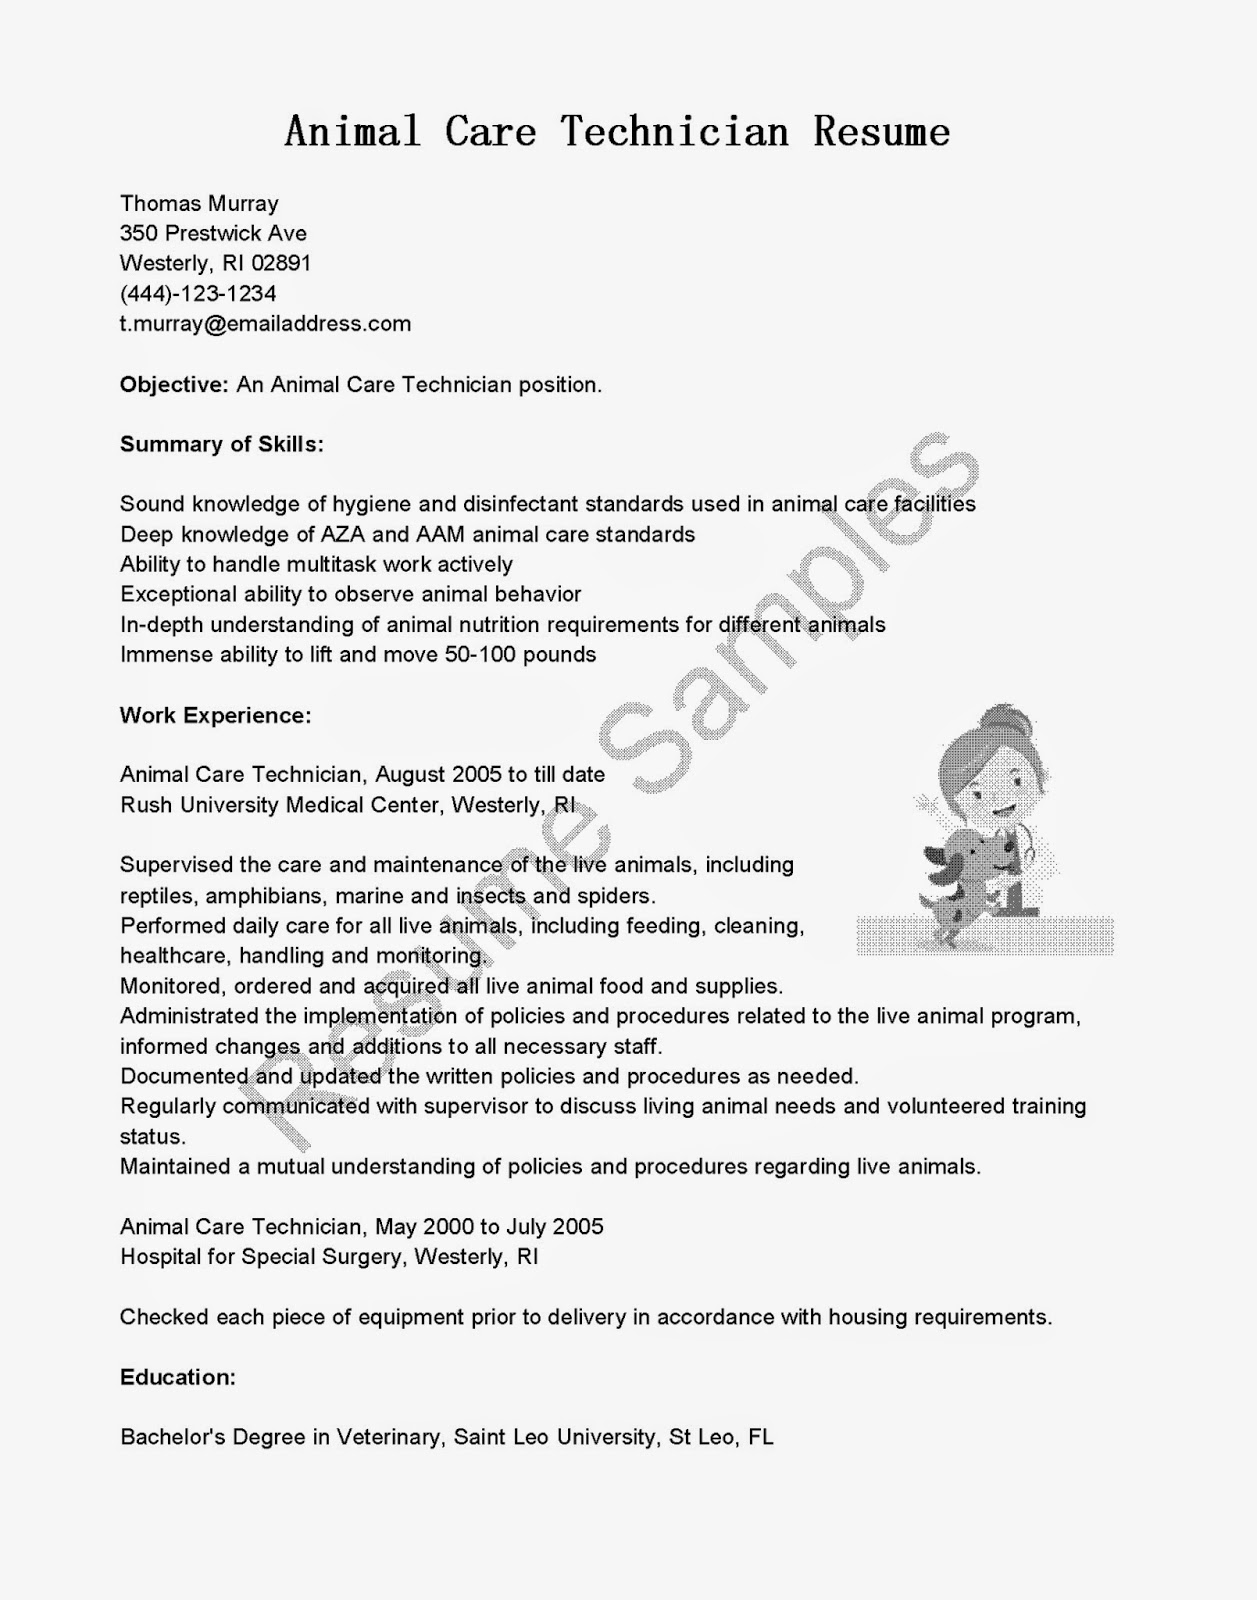 resume samples  animal care technician resume sample